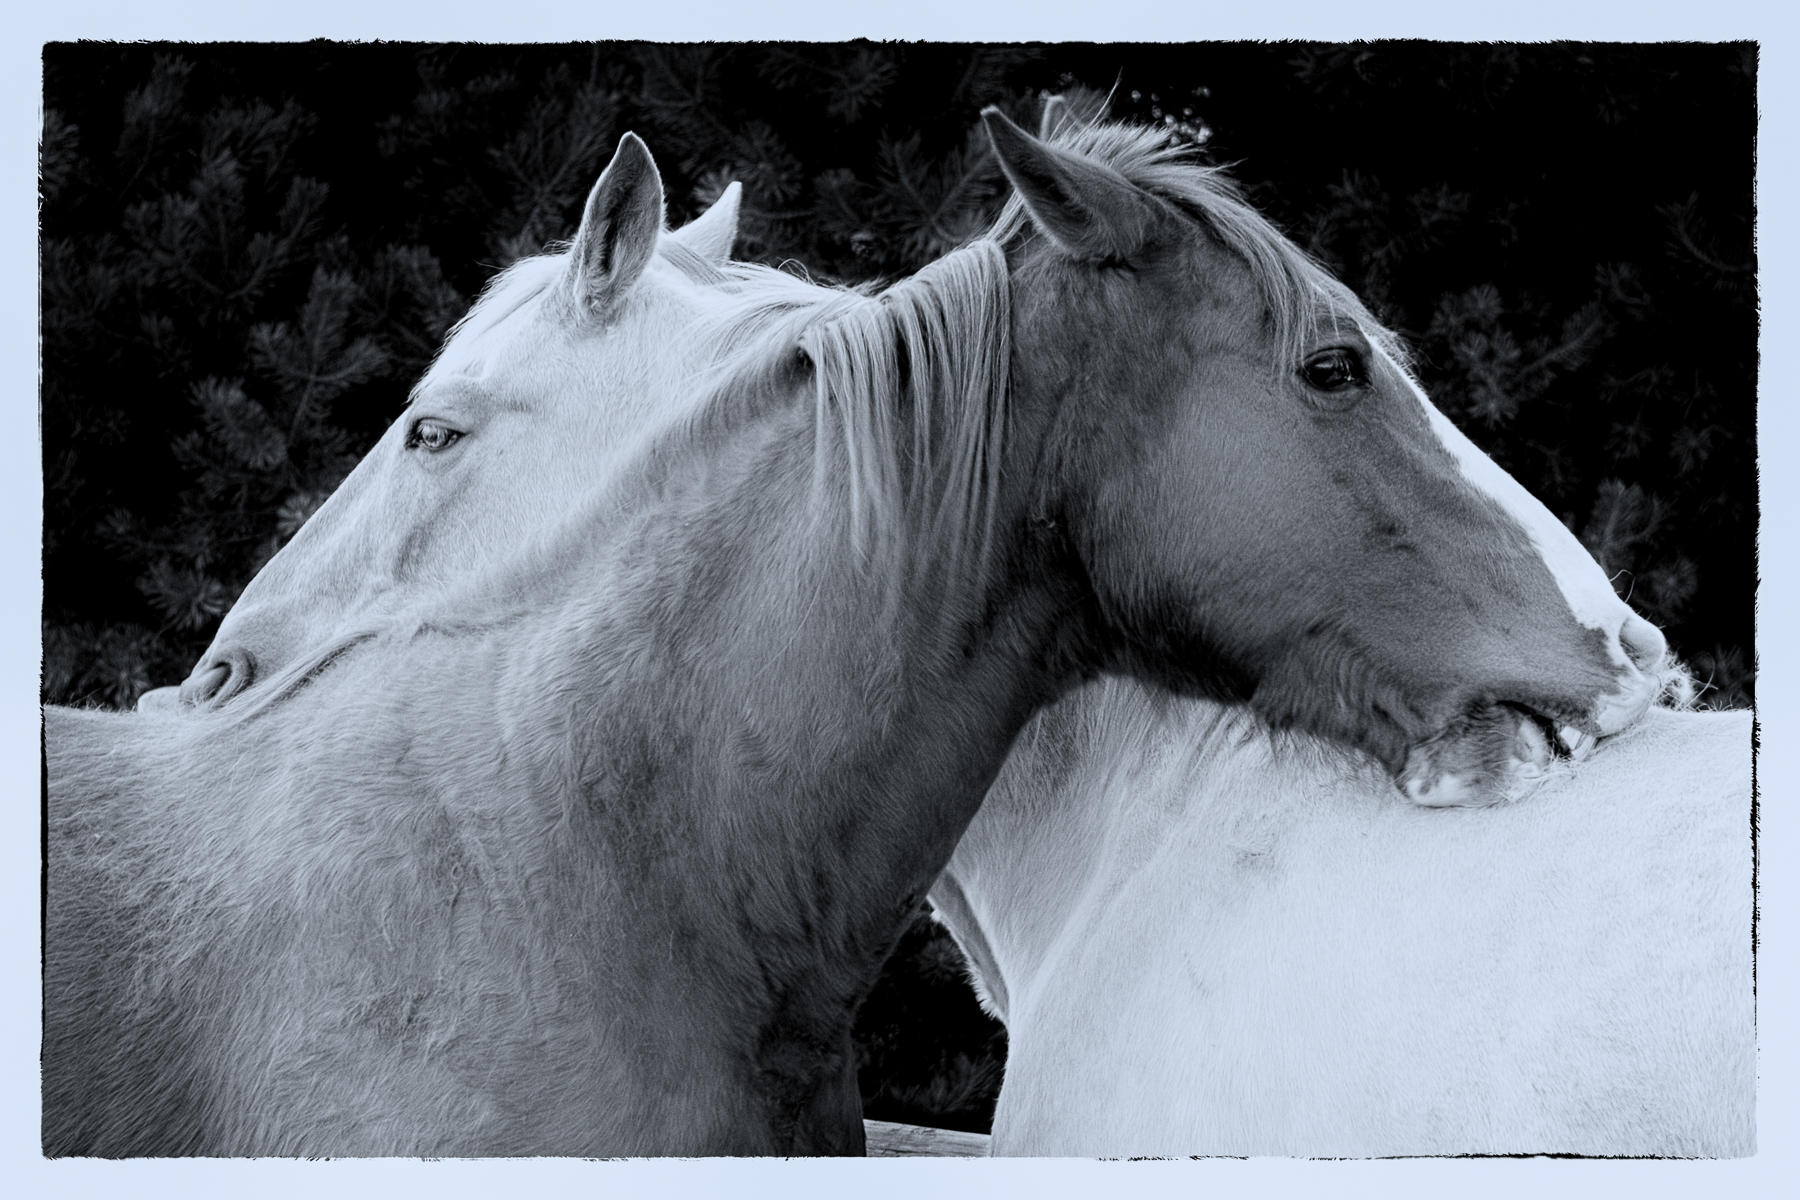 Jed and Spirit  : equus et al : TIMOTHY FLOYD PHOTOGRAPHER, NATURE PHOTOGRAPHY, PHOTO ESSAYS, PHOTOJOURNALISM